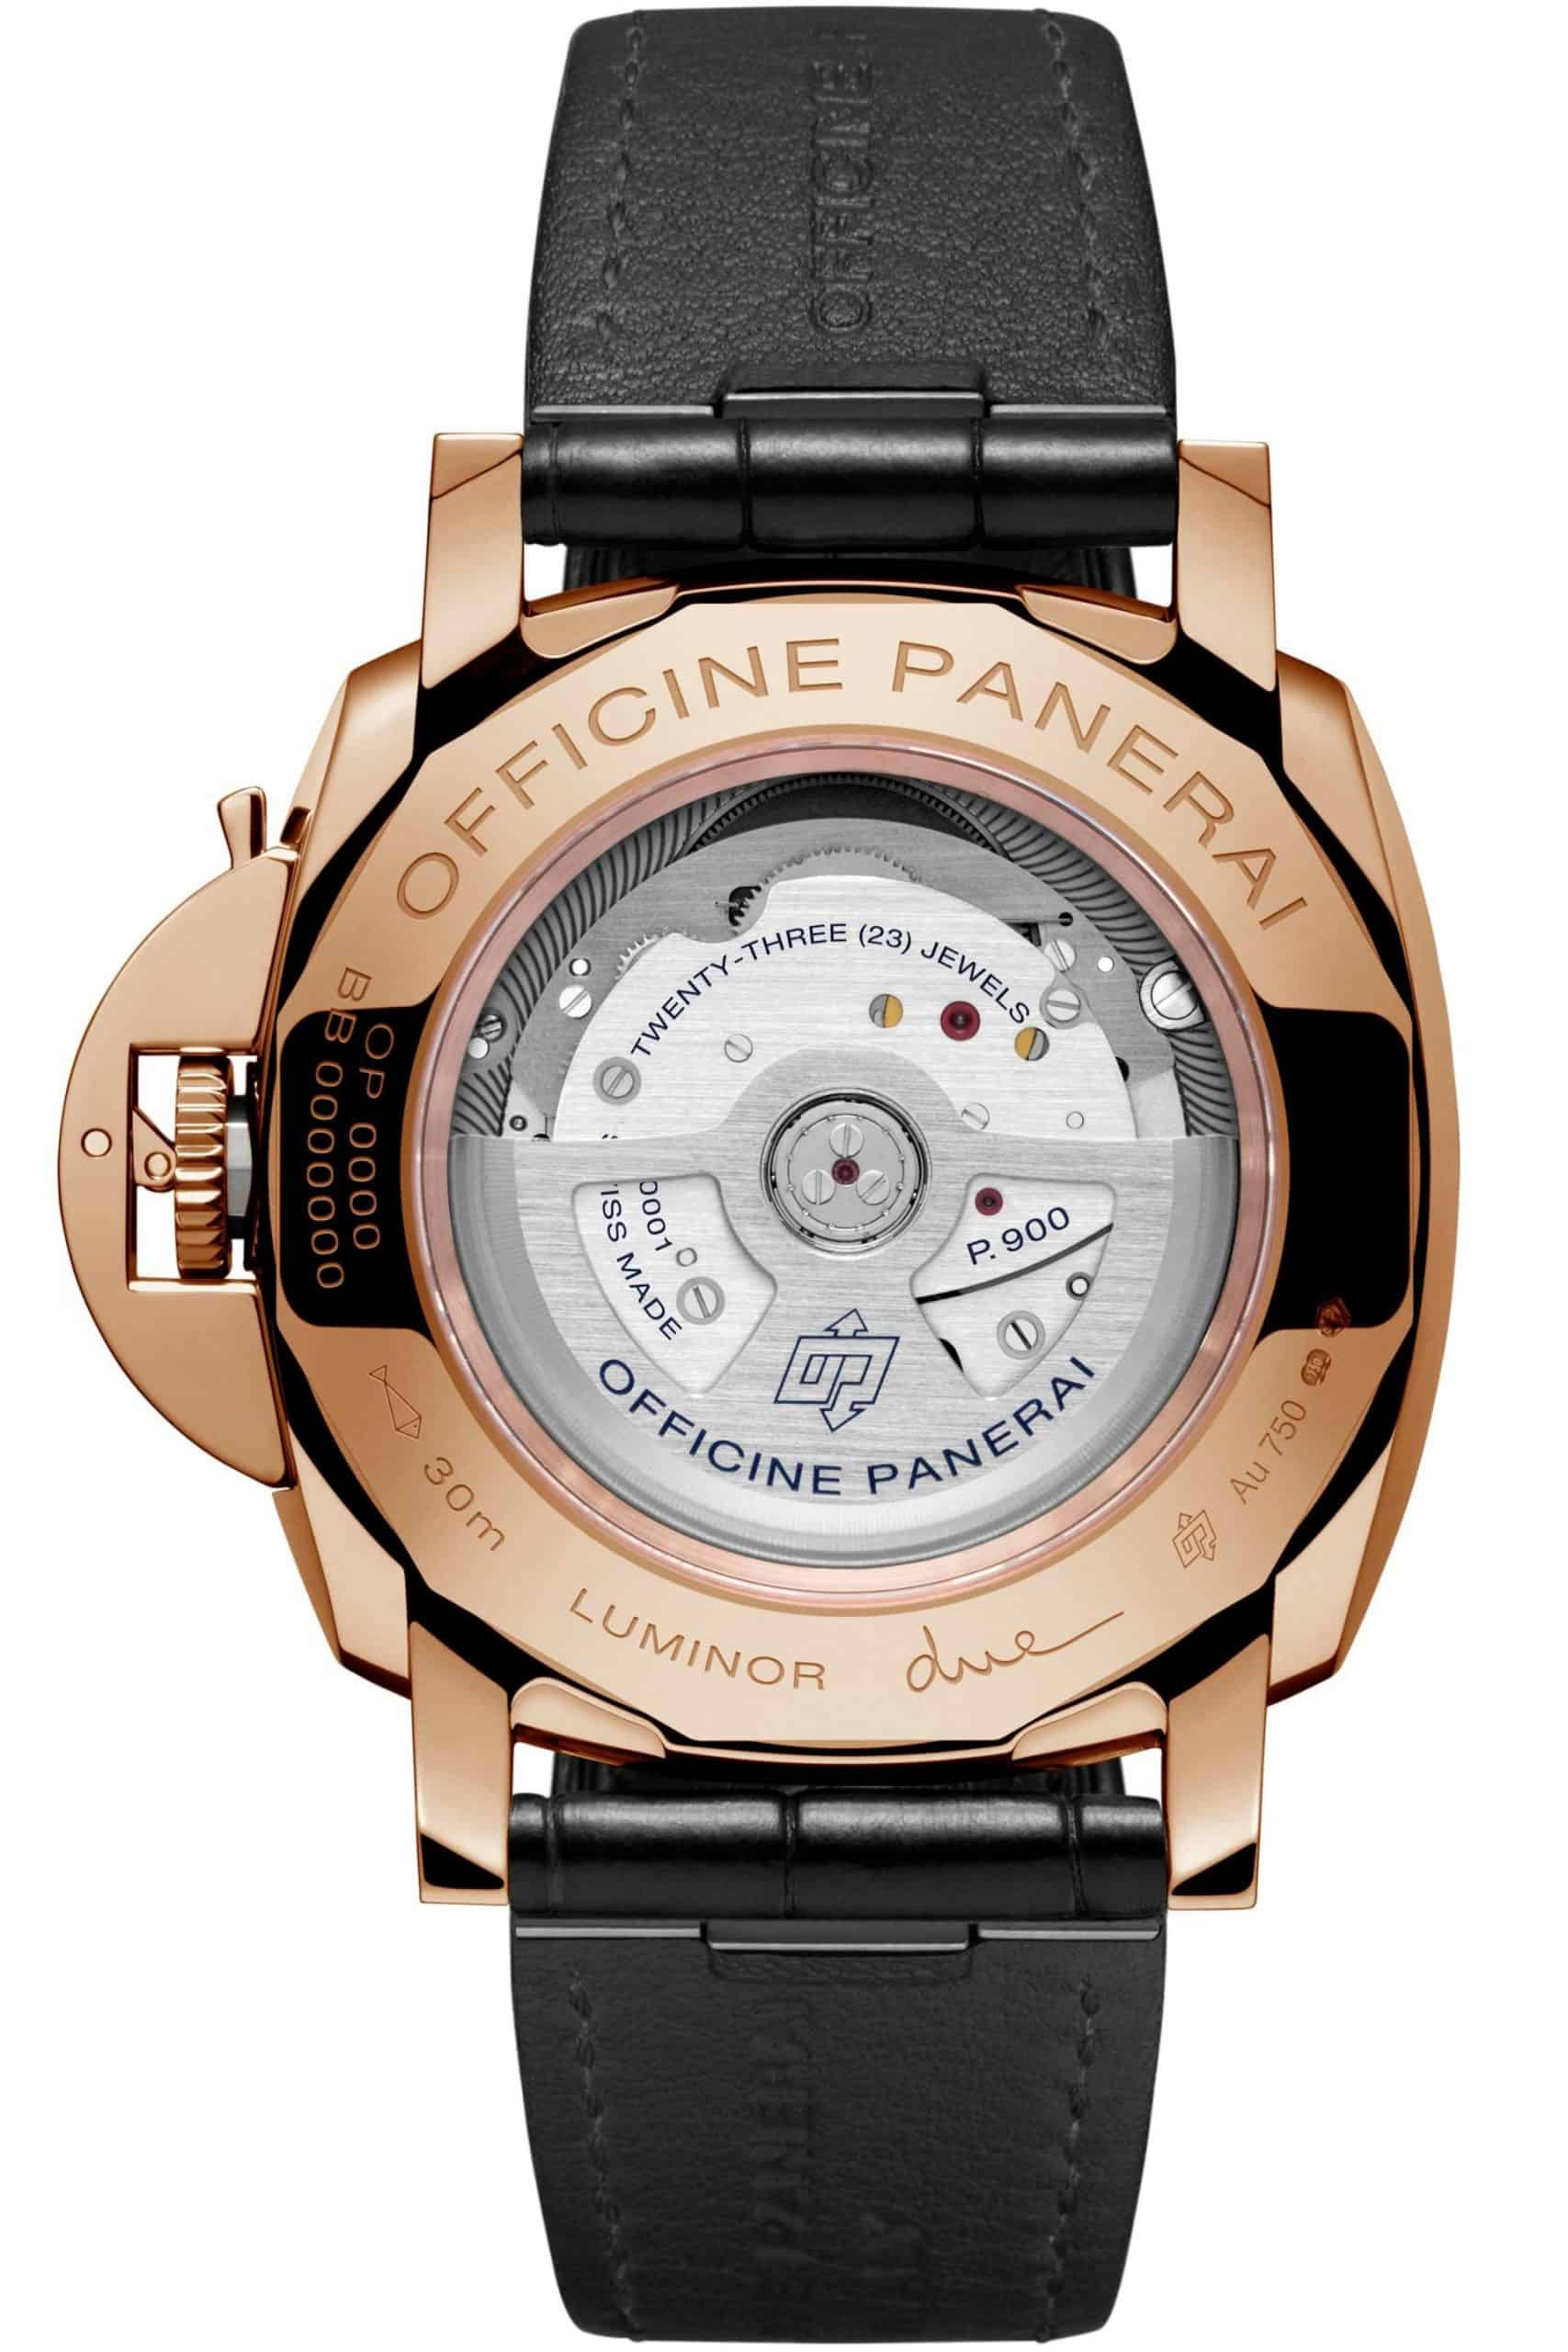 Rückseite der Panerai Luminor Due Goldtech